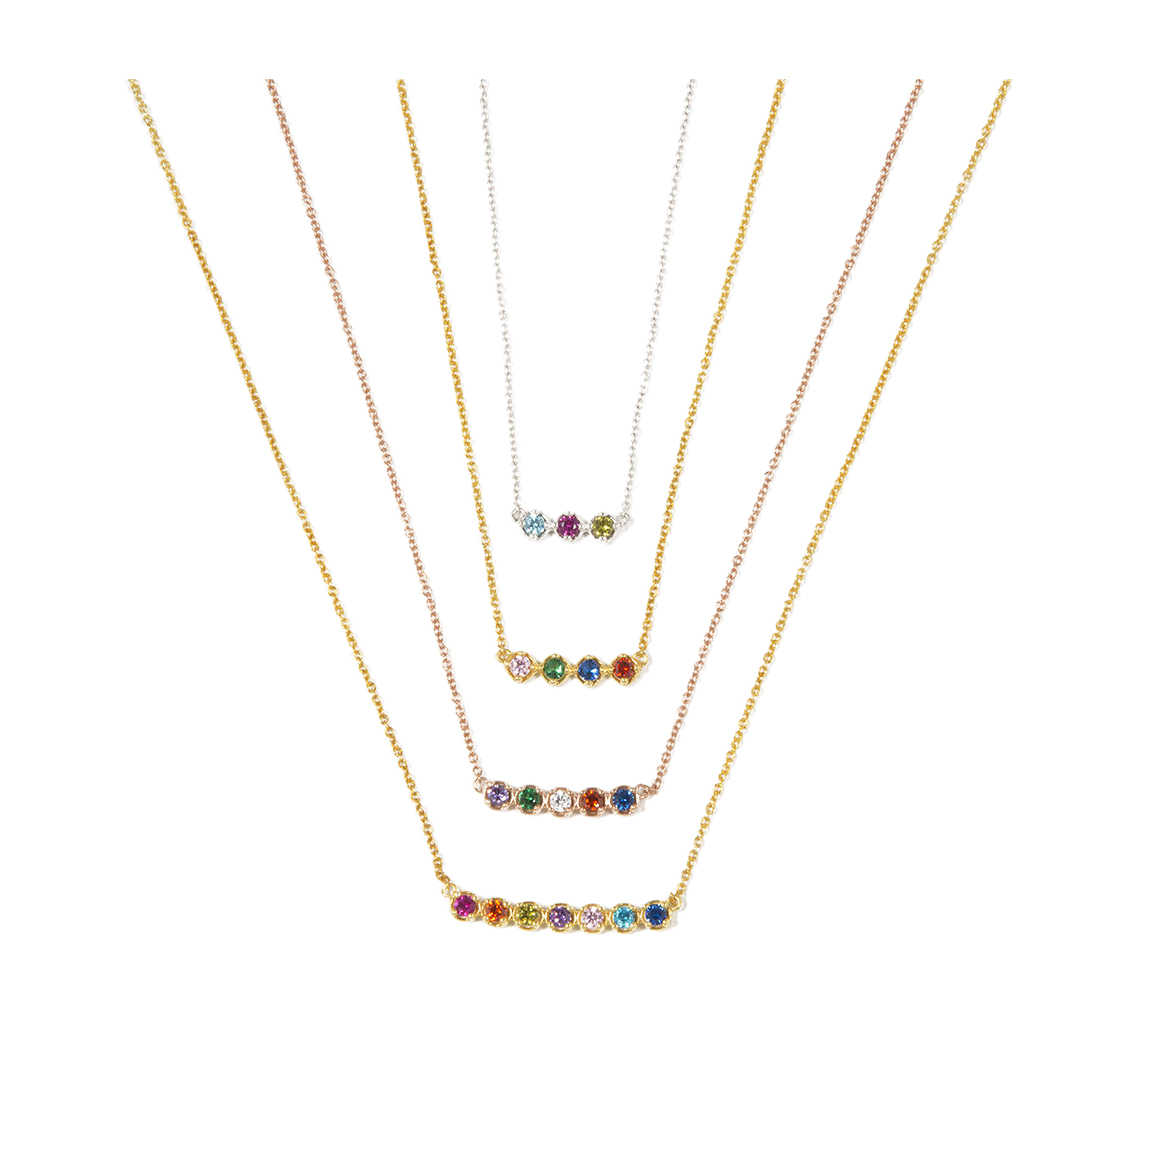 Ani Jewelry Design Birthstone Necklace